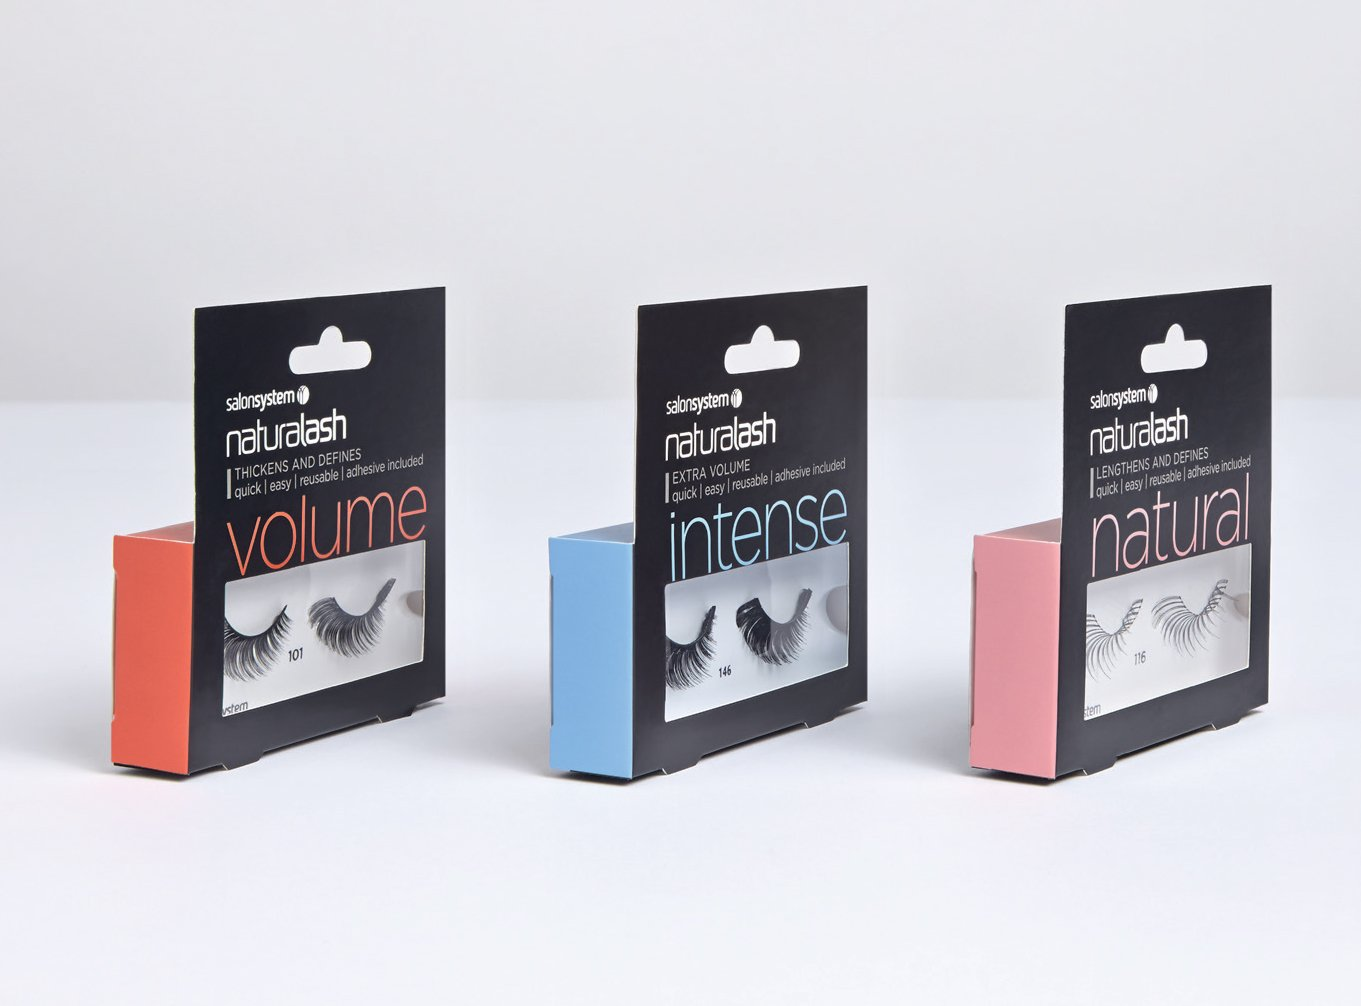 3 packs of naturalash eyelashes from salon systems, branding and packaging by beyond london